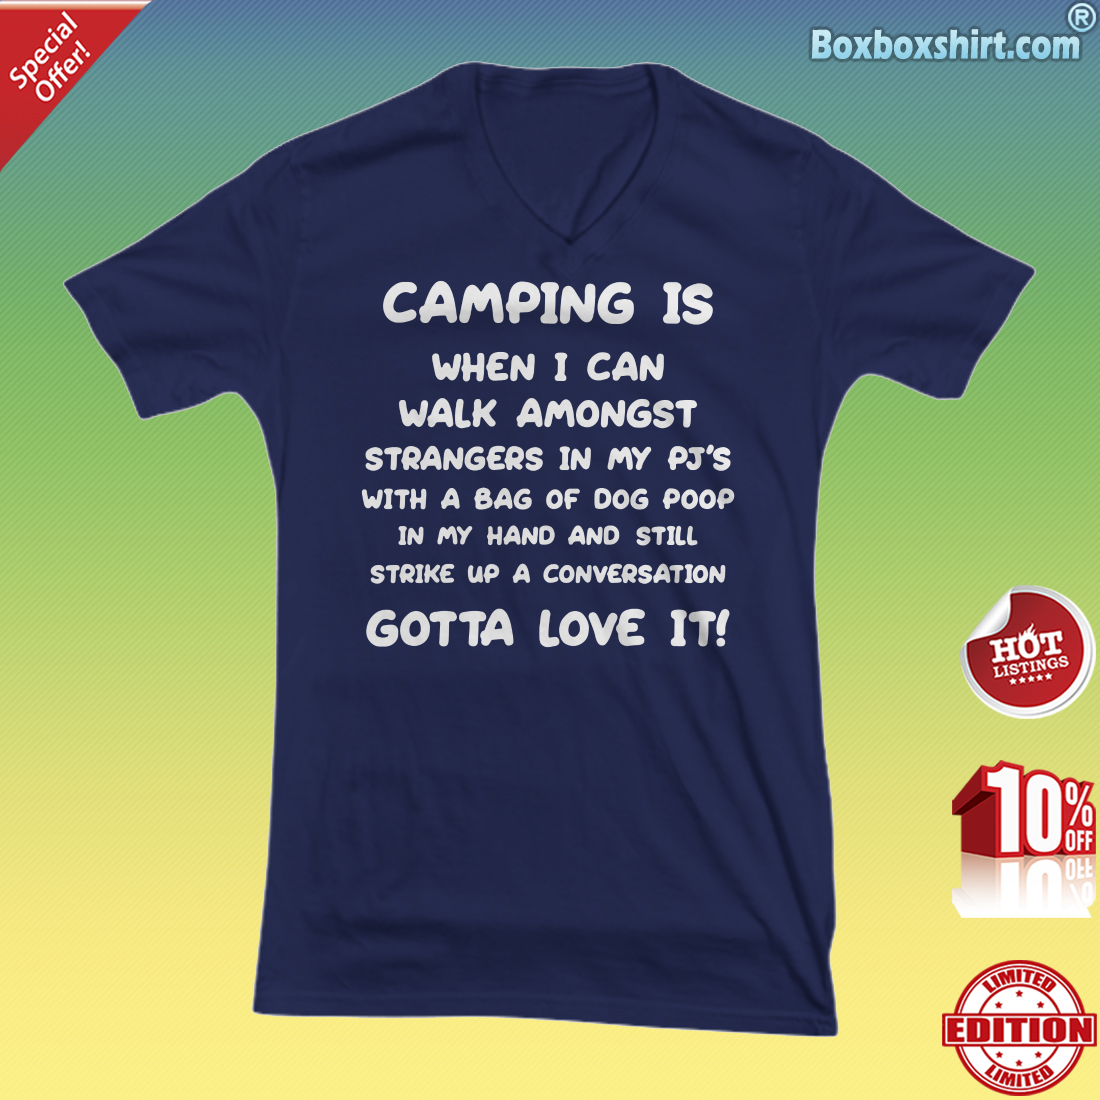 Camping is when i can walk amongst stranger in my PJS with a bag of dog poop V-neck Tee